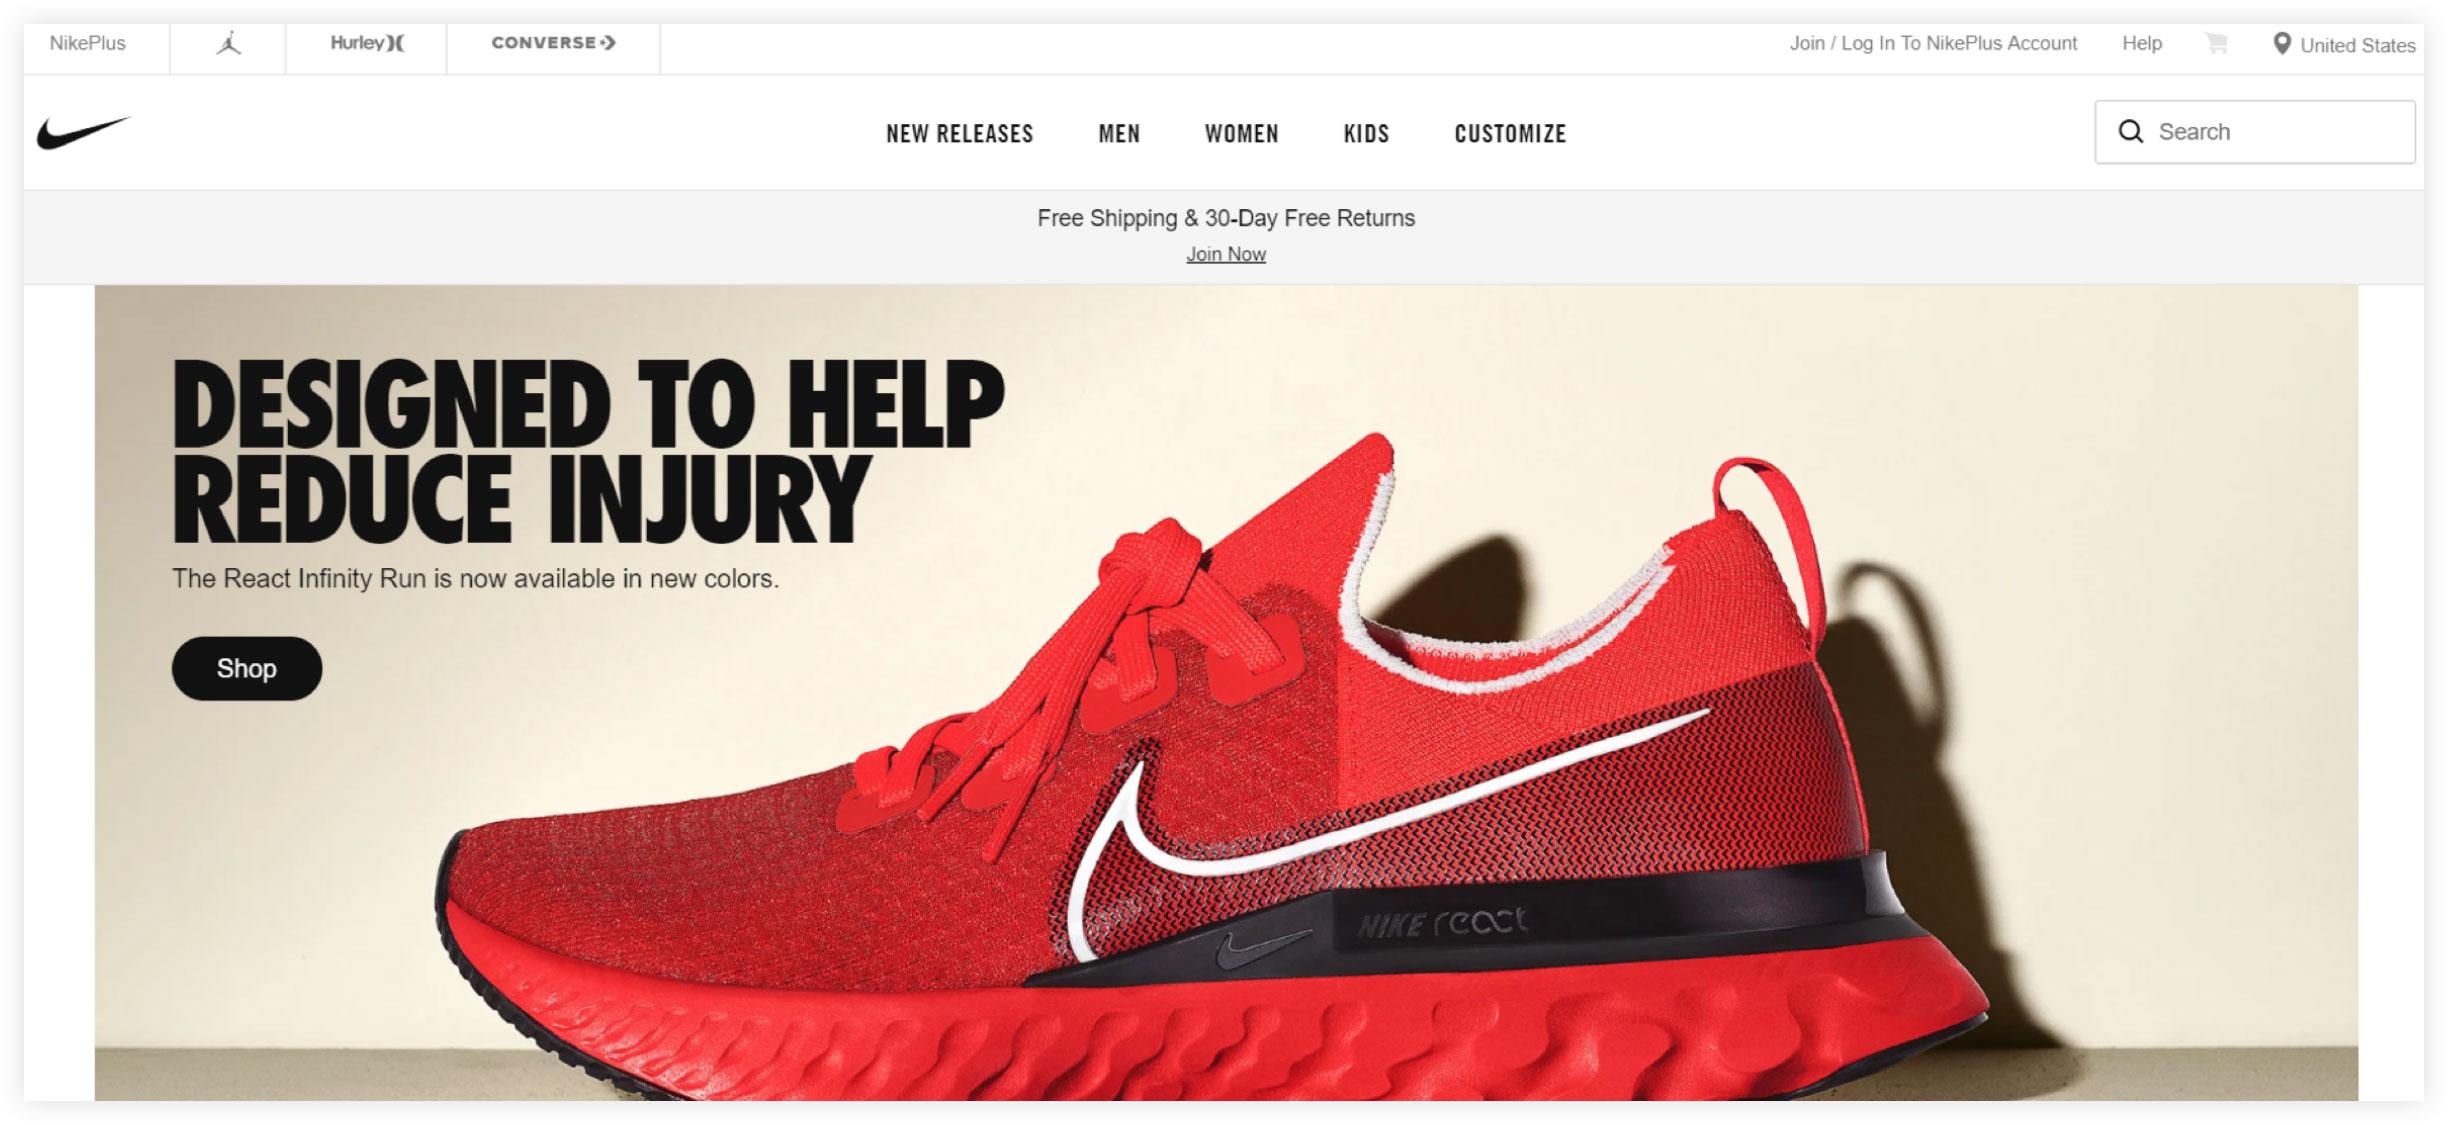 Nike Ecommerce Website Example